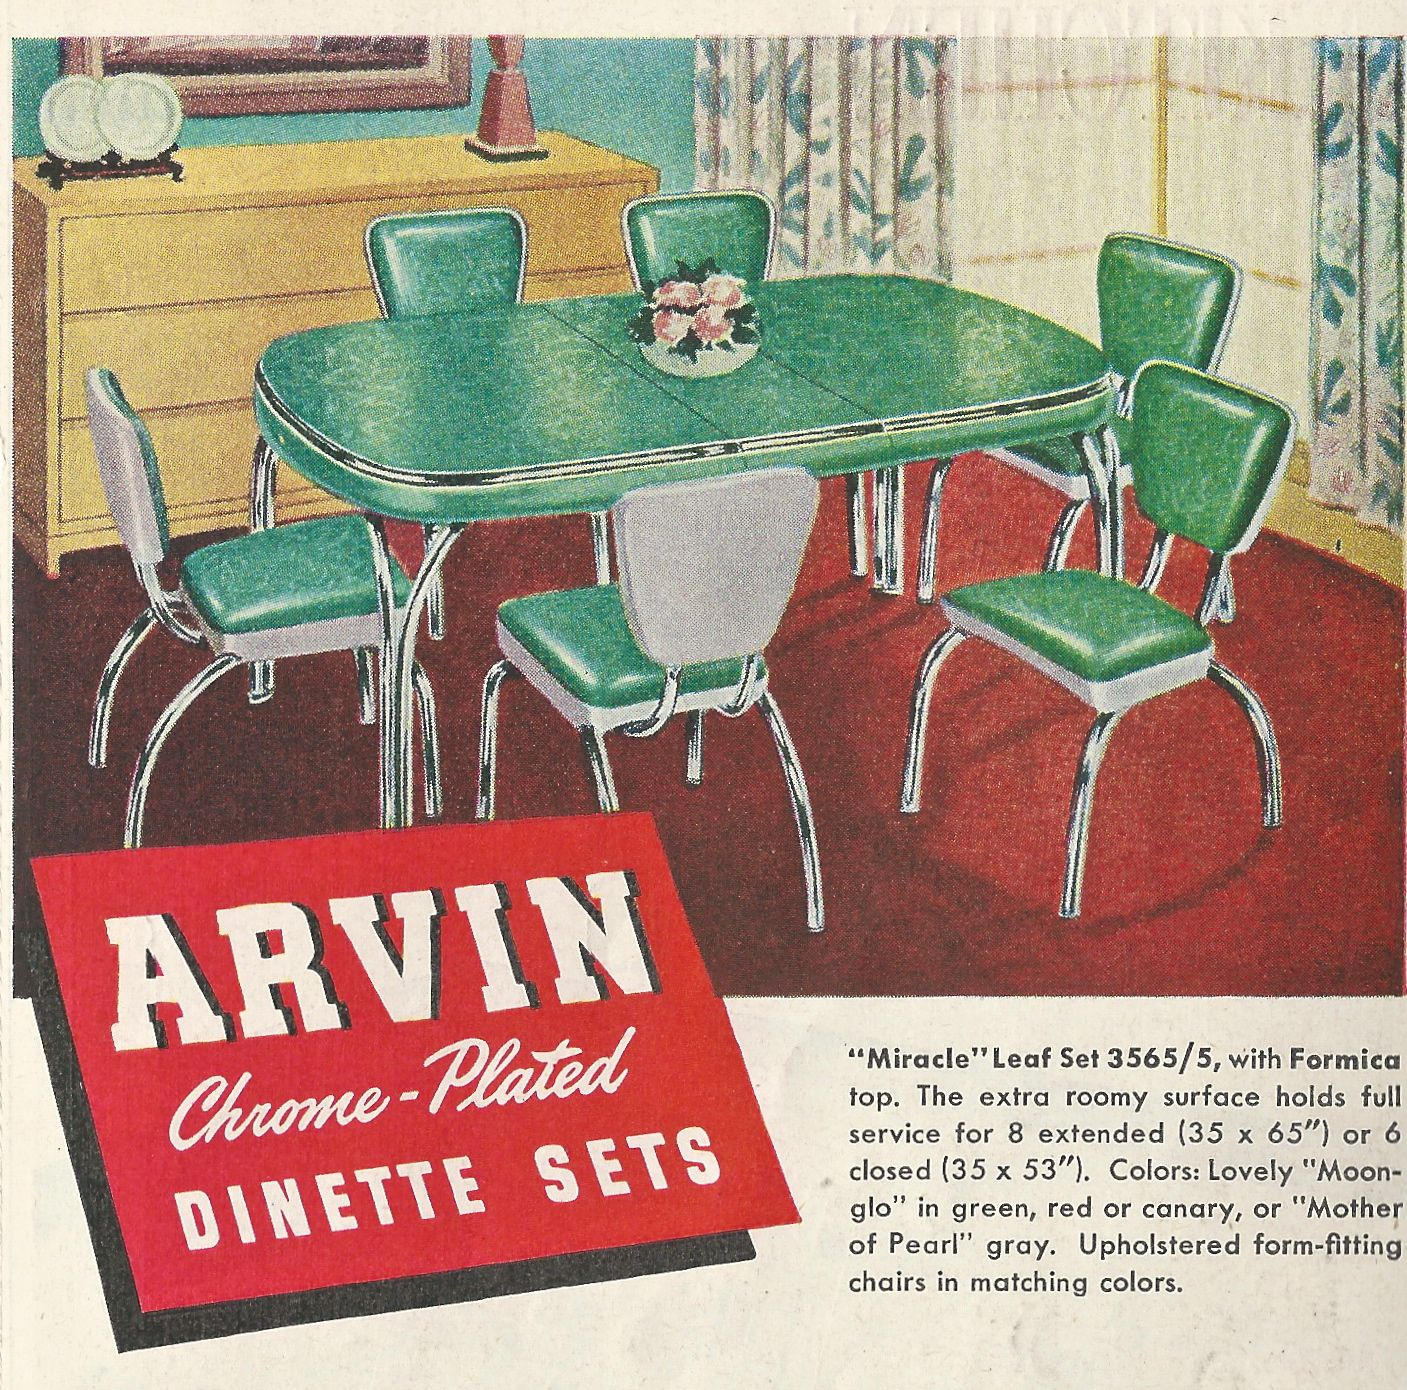 Vintage Kitchen Decor. 1950s. Original Ad for Arvin Dinette Set.  #vintage decor #retro #kitchen #dinette #arborite #1950s